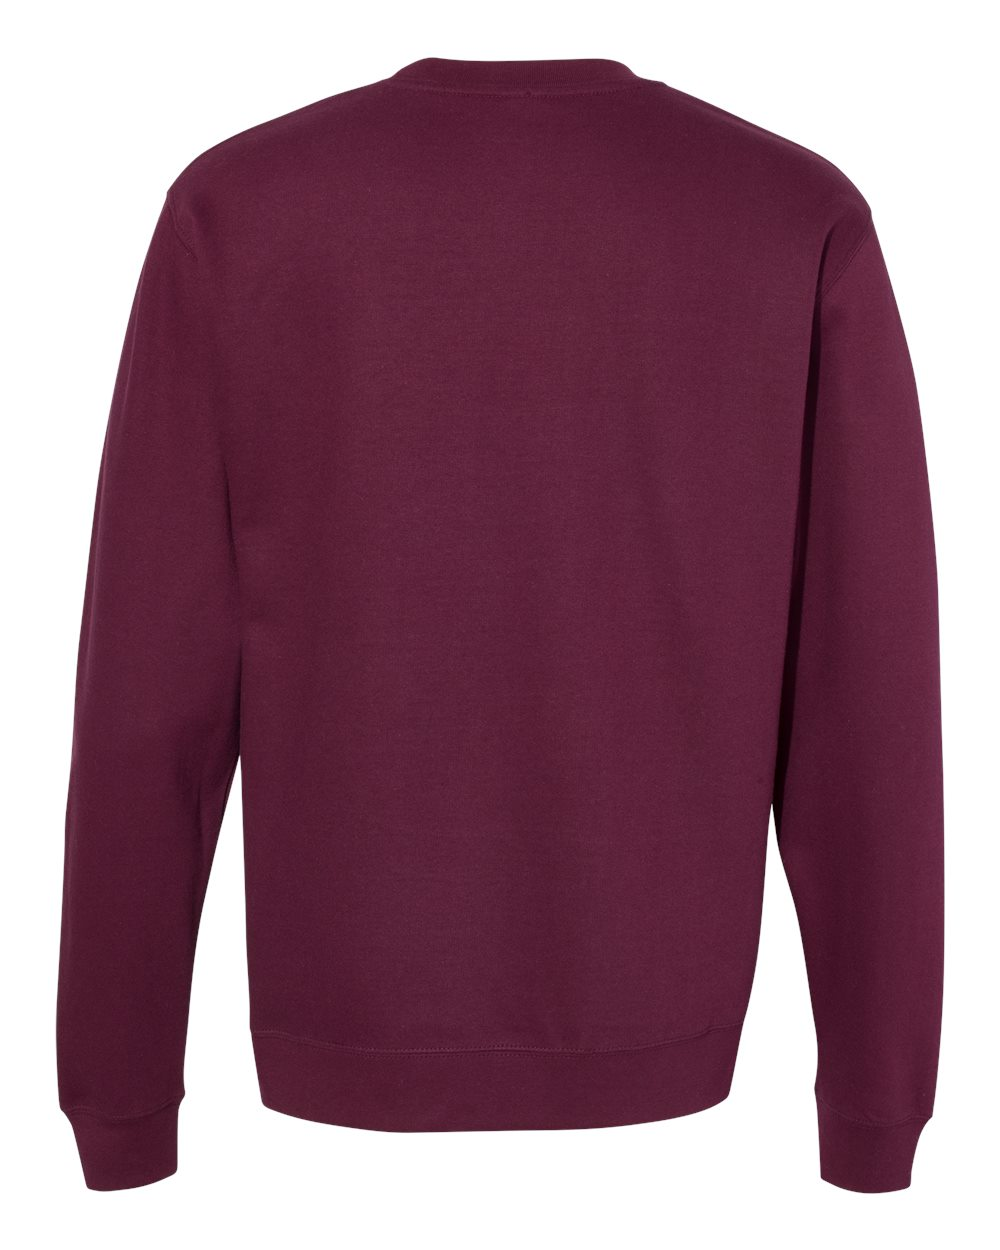 Independent-Trading-Co-Midweight-Crewneck-Sweatshirt-SS3000-up-to-3XL miniature 31